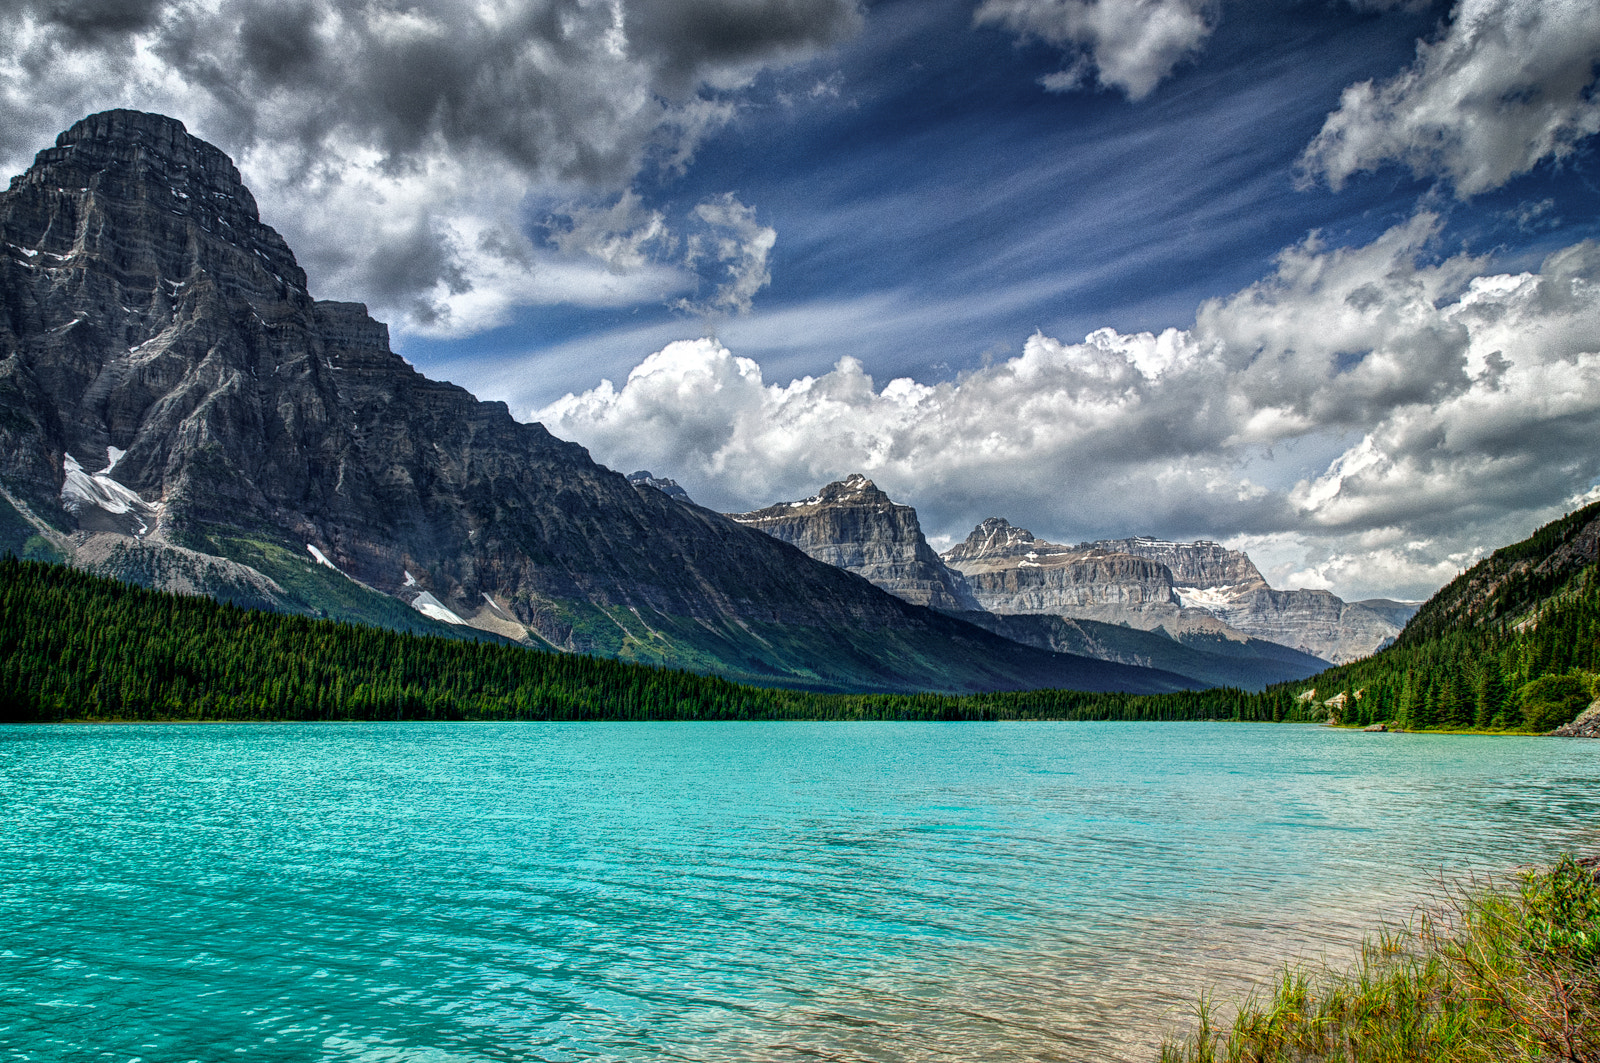 Photograph Jasper by Steve Steinmetz on 500px